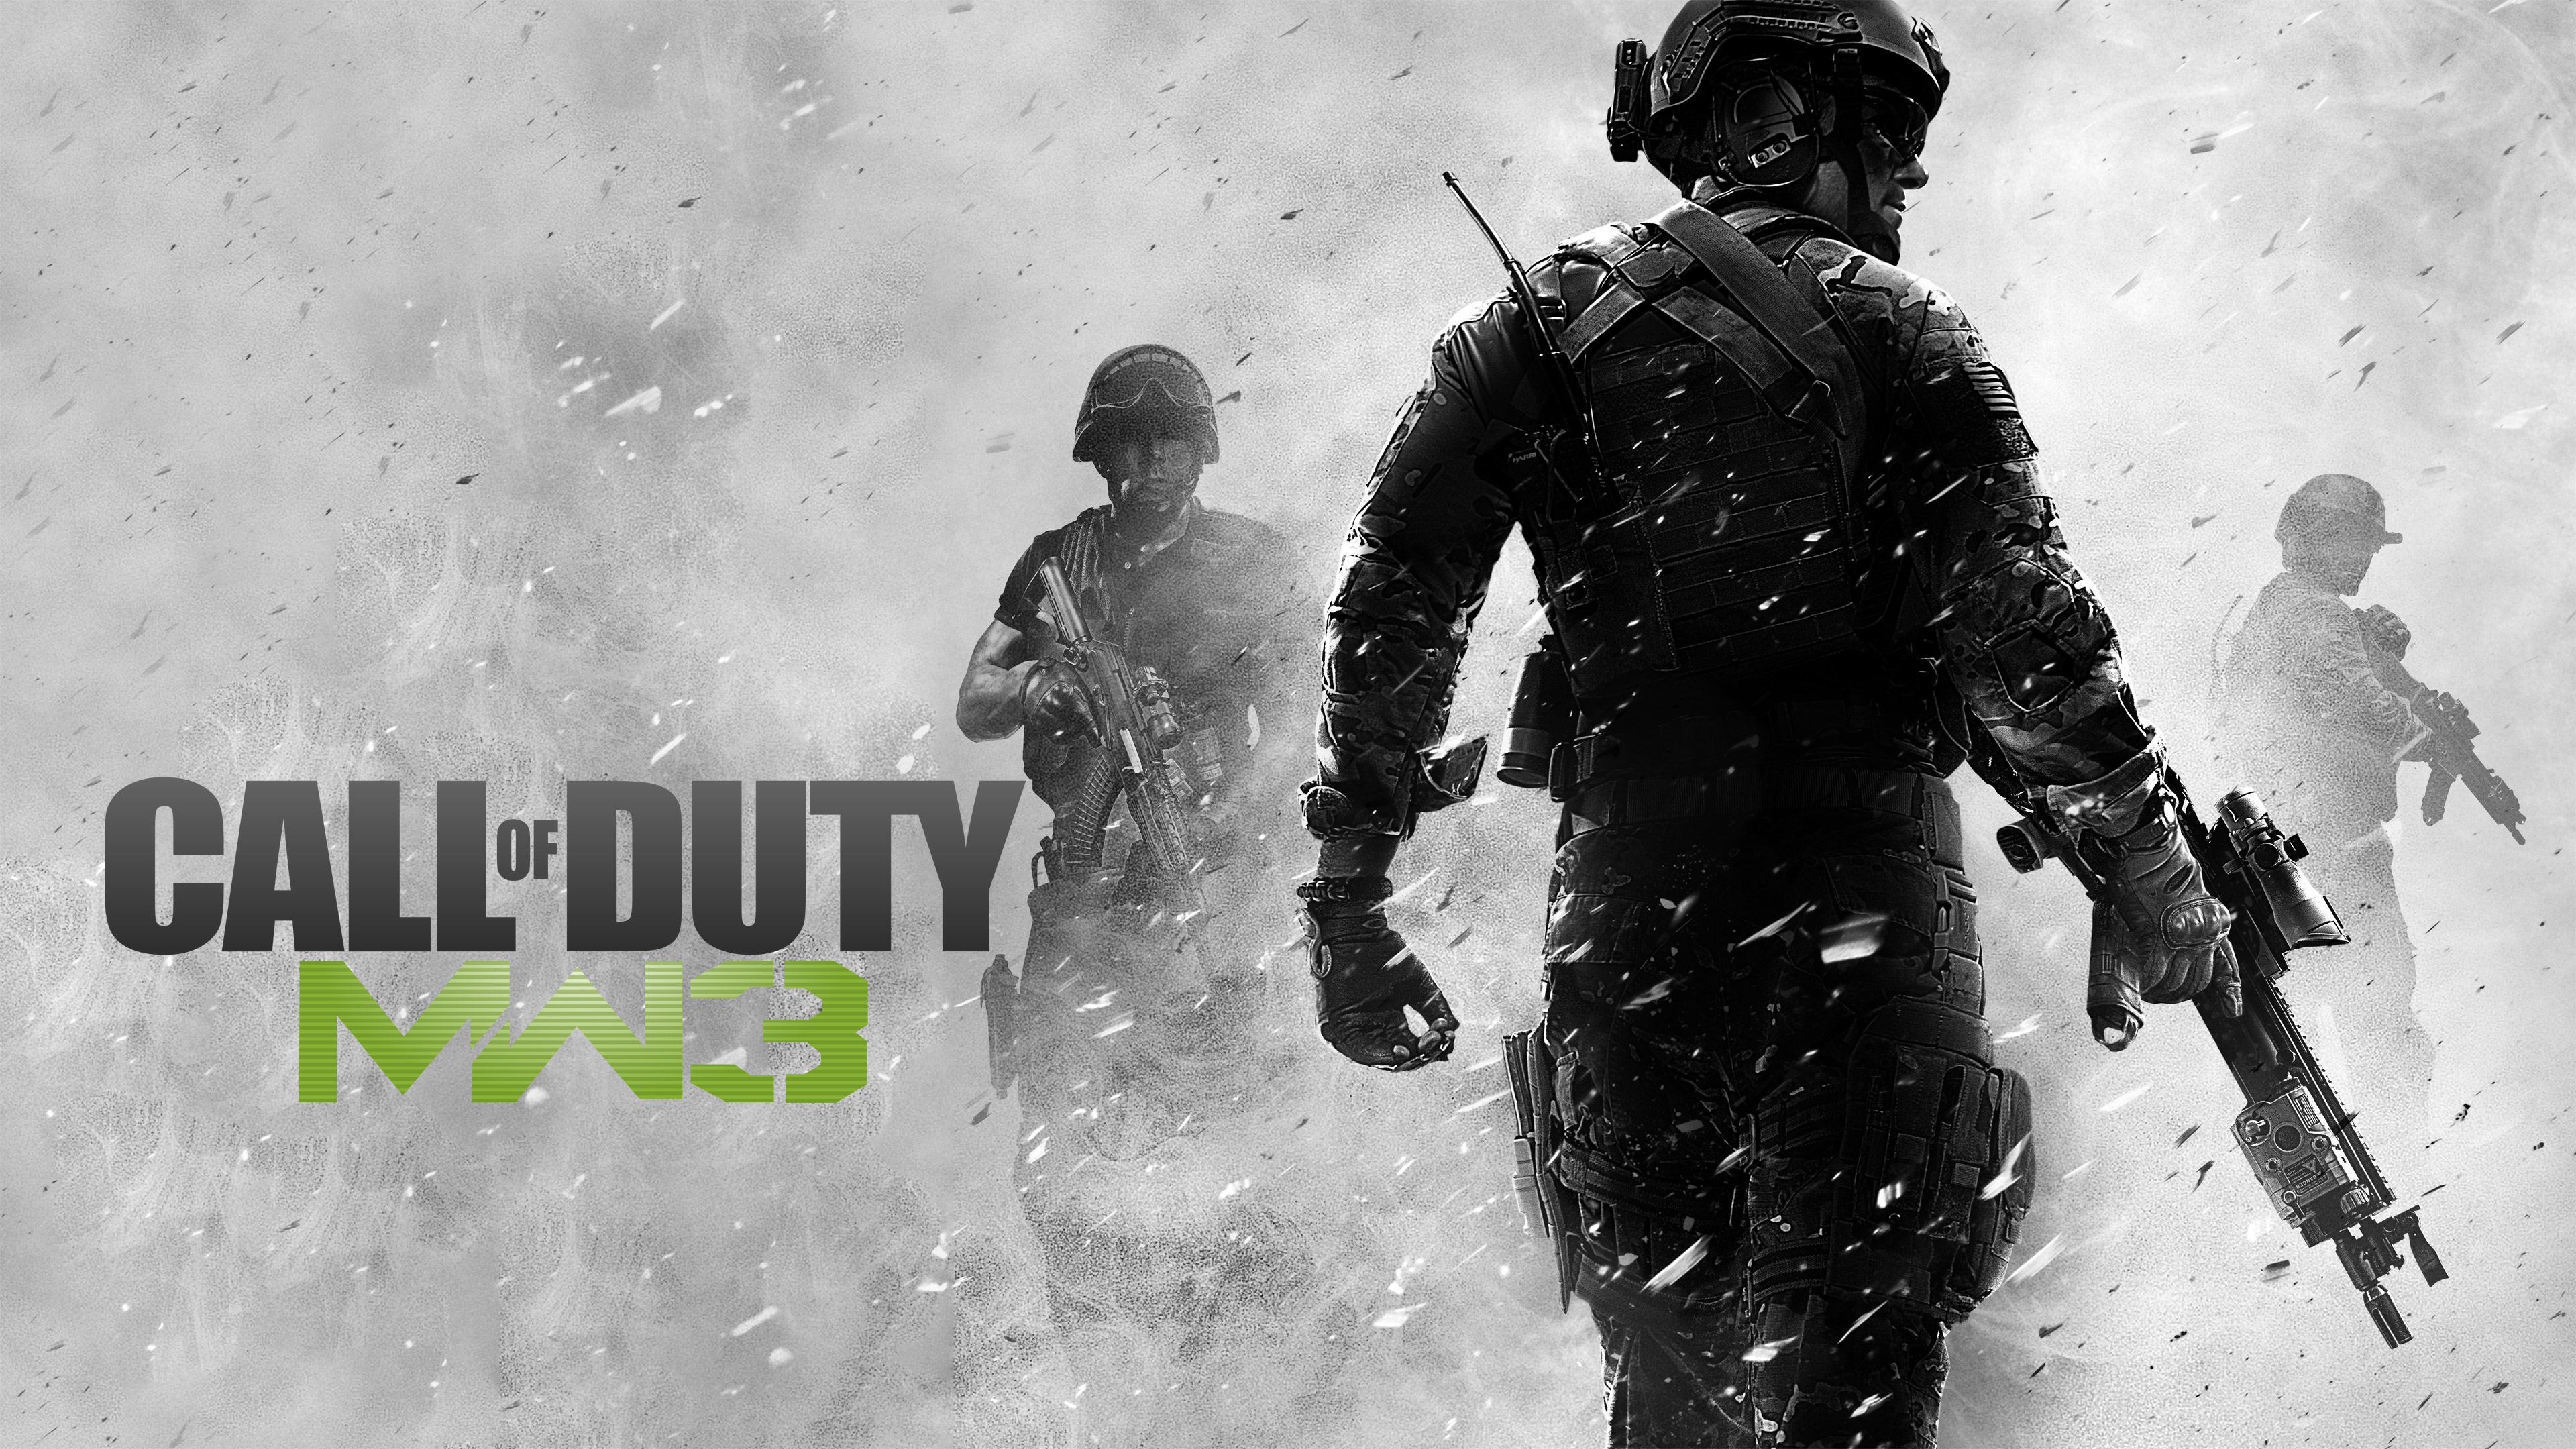 Call Of Duty Modern Warfare 3 4k Hd Games 4k Wallpapers Images